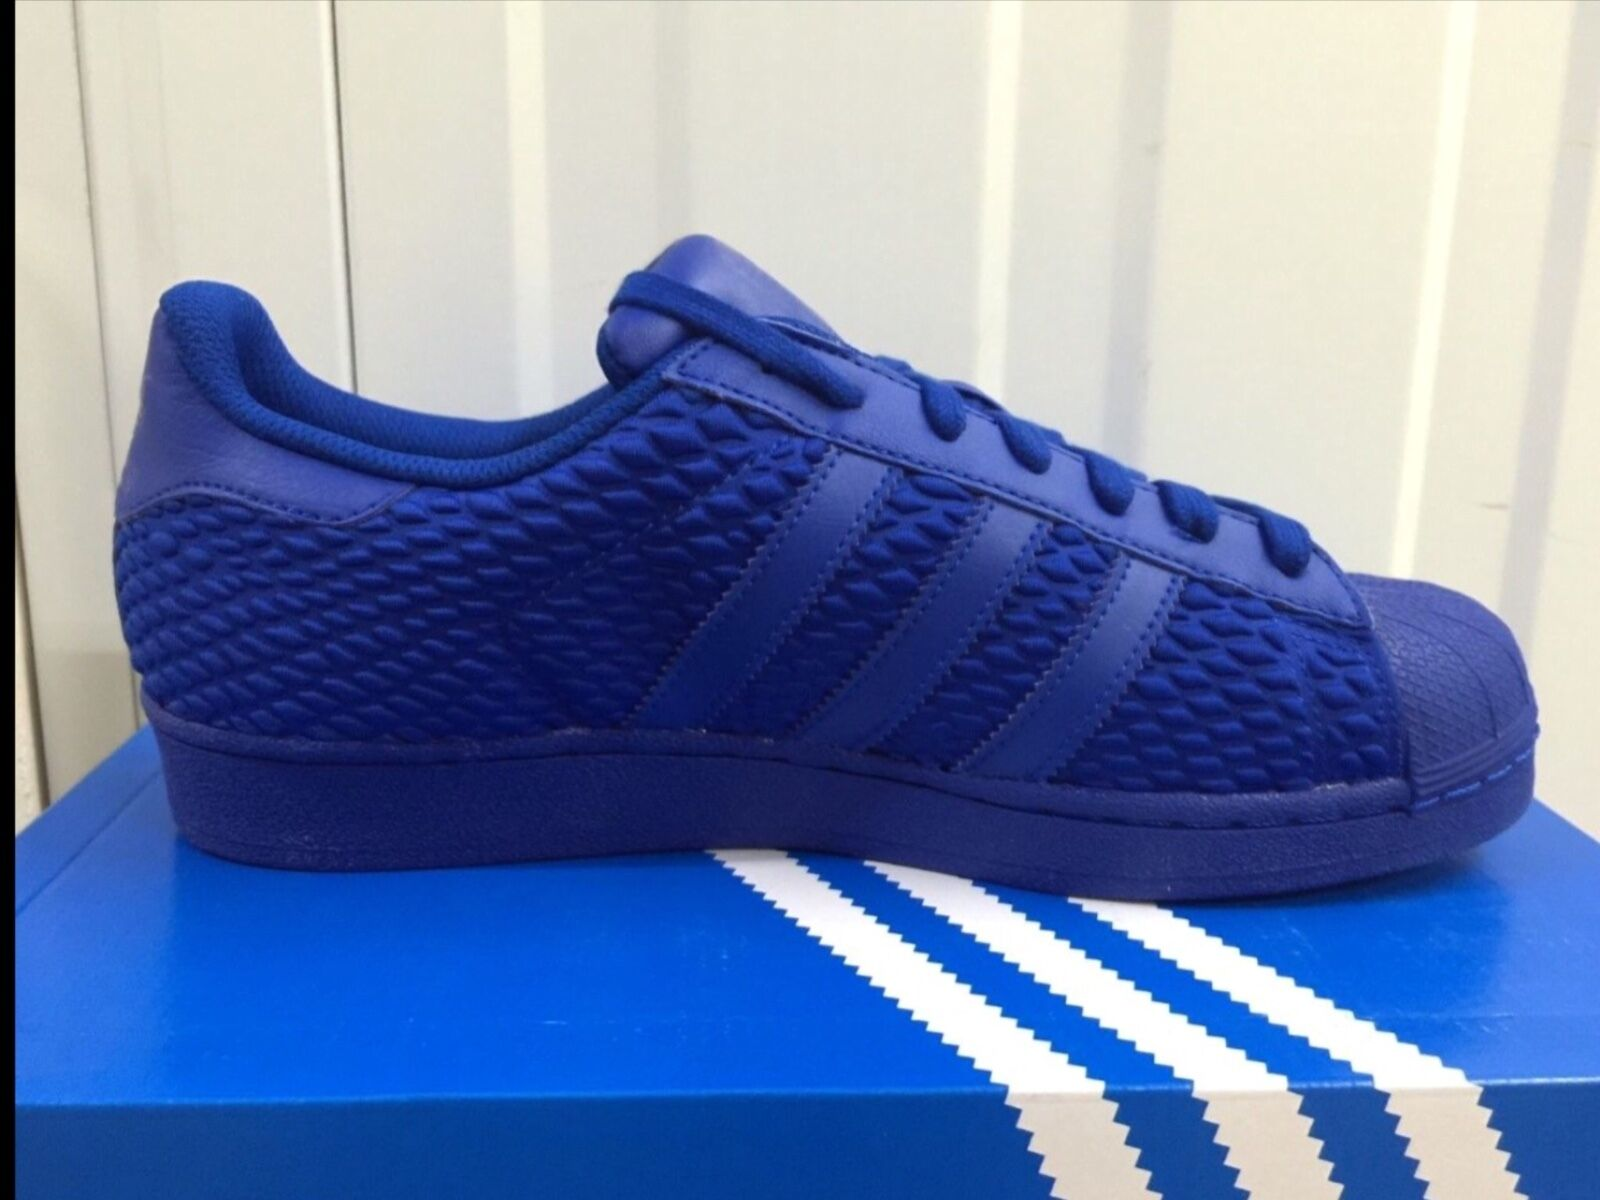 ADIDAS ORIGINAL SUPERSTARS  Herren AQ3050 UK 7 1/2 41 EU 41 1/2 1/3 TRAINERS Blau CROYAL a62fbe